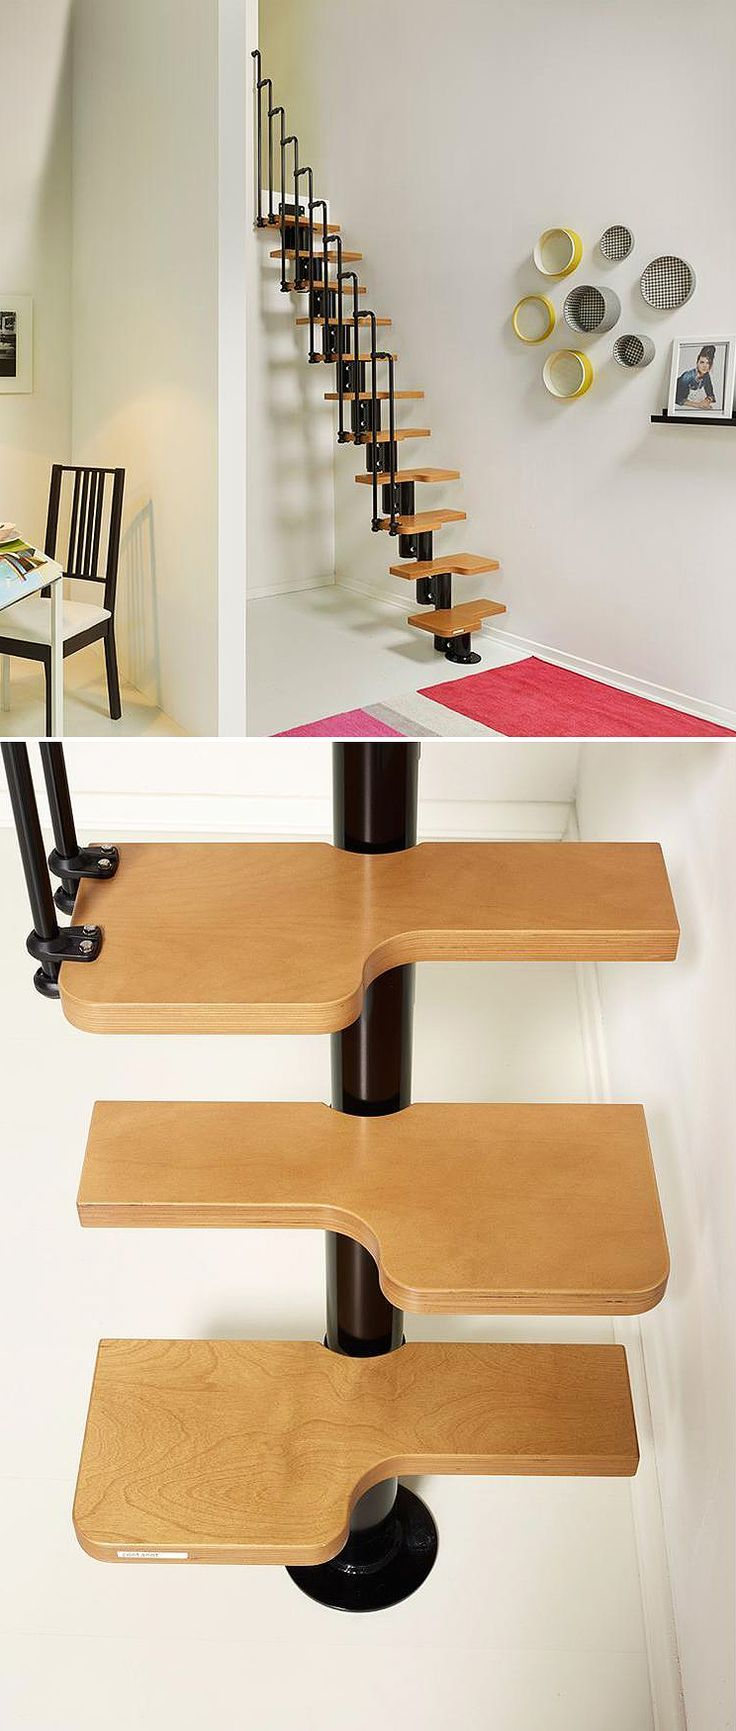 The Nice2 Stair Kit Is An Adjustable Space Saving Set Of Steps With An  Alternating Tread Design For Maximum Space Utilization.